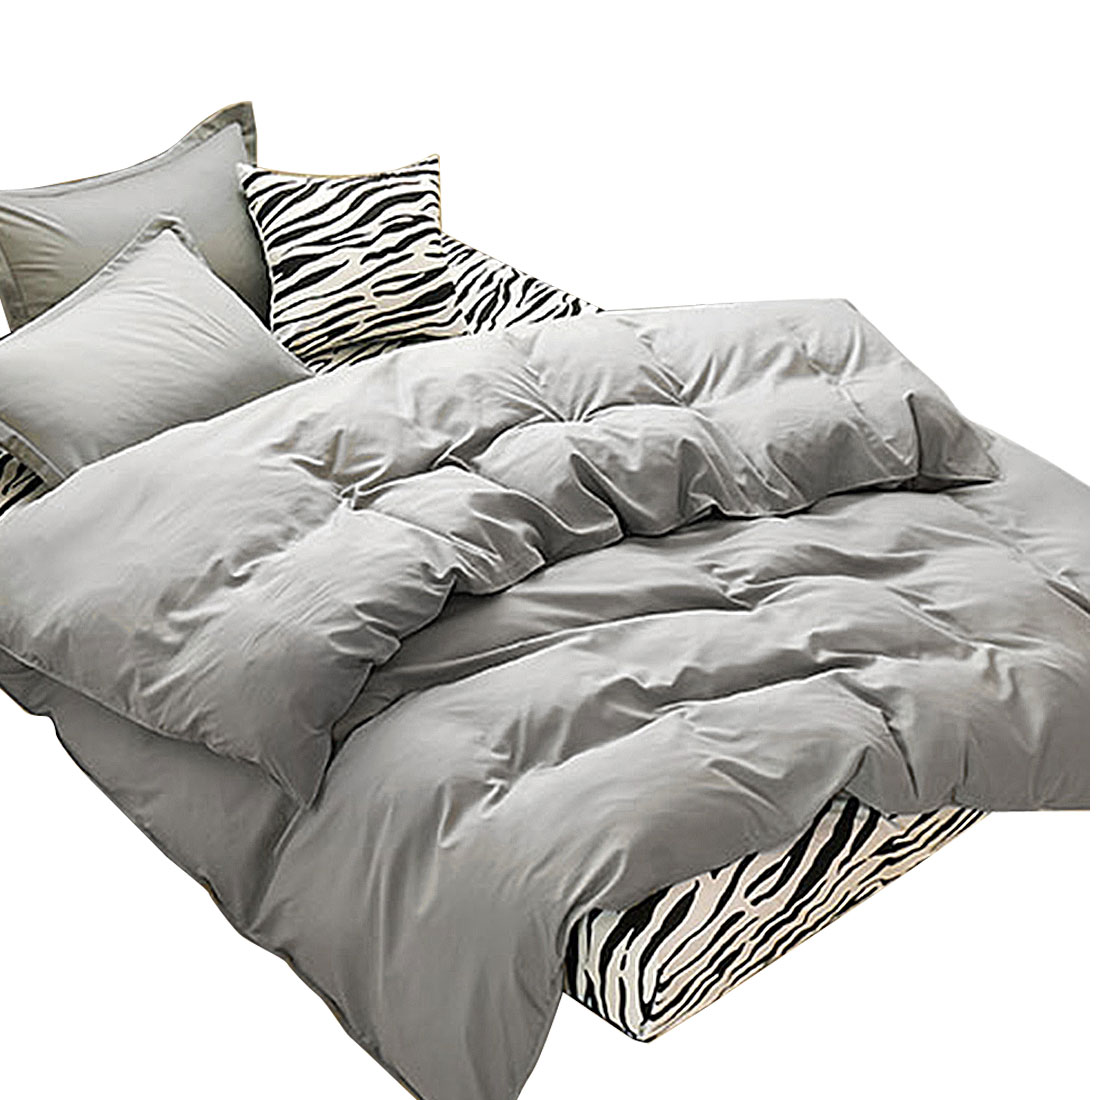 Bedroom Duvet Quilt Cover Pillowcase Bedding Set Bedclothes Gray Single Size